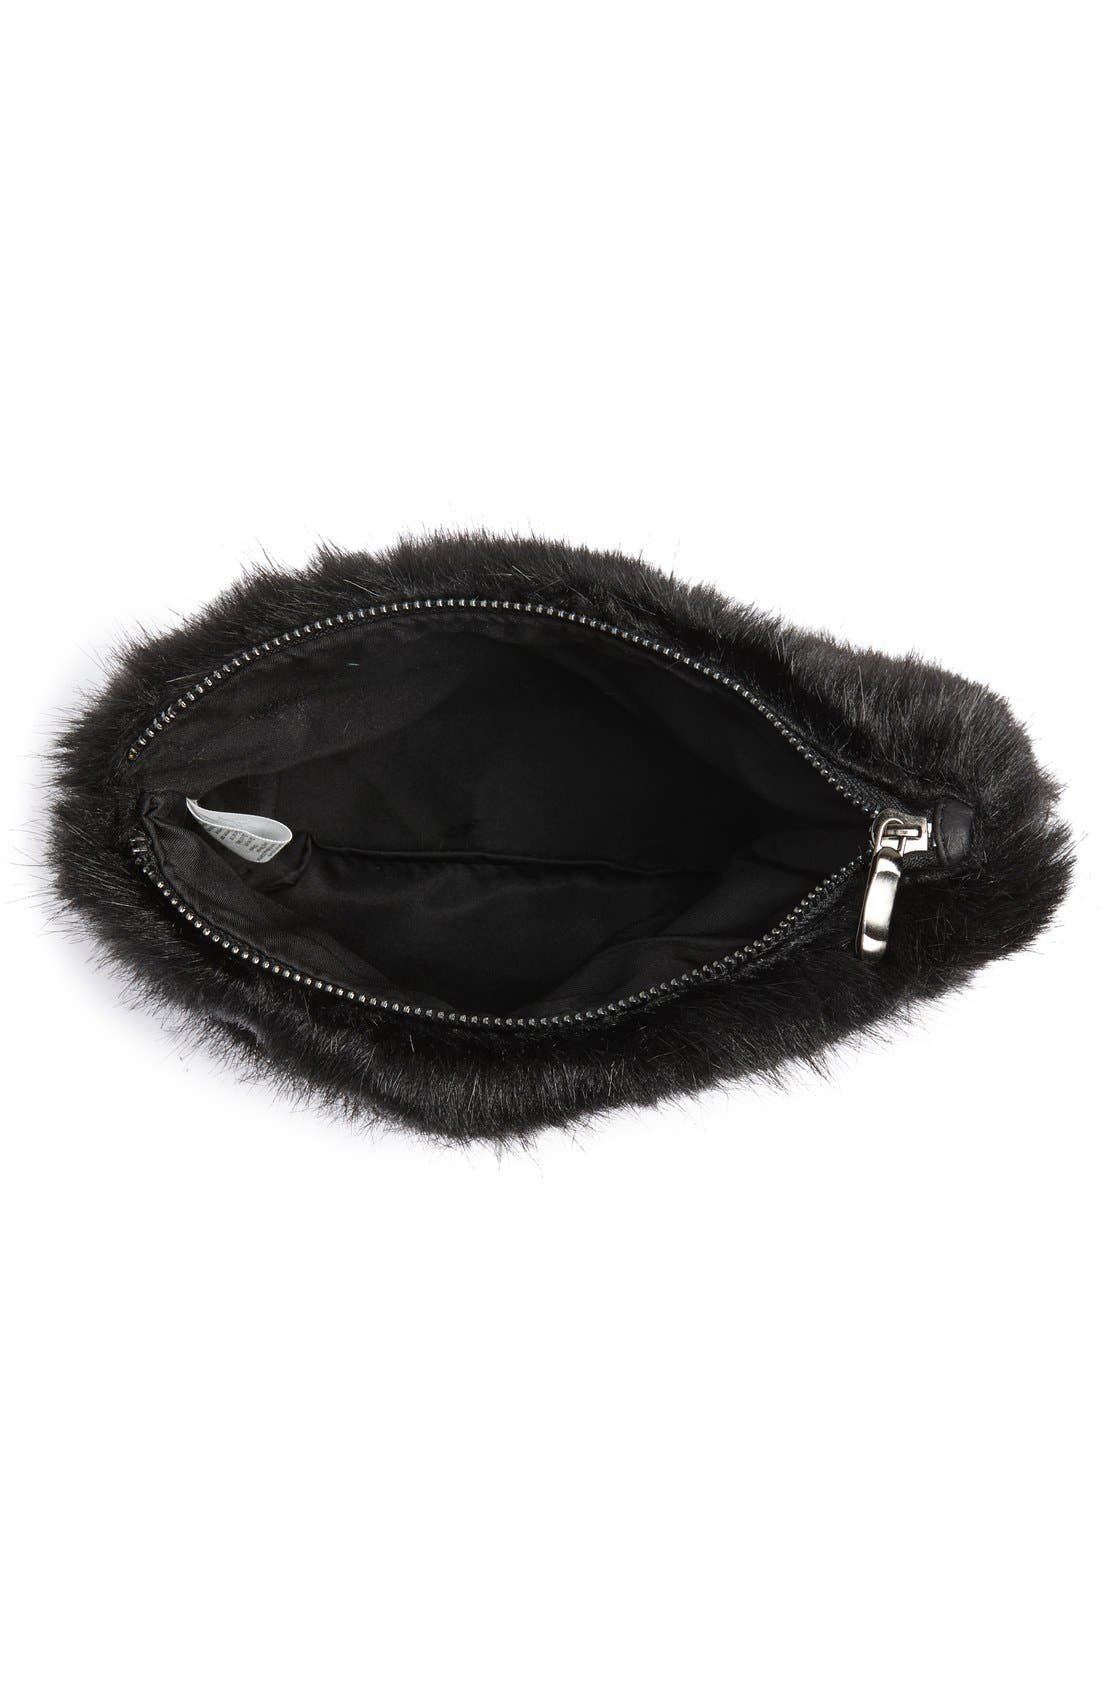 Faux Fur Clutch,                             Alternate thumbnail 8, color,                             001